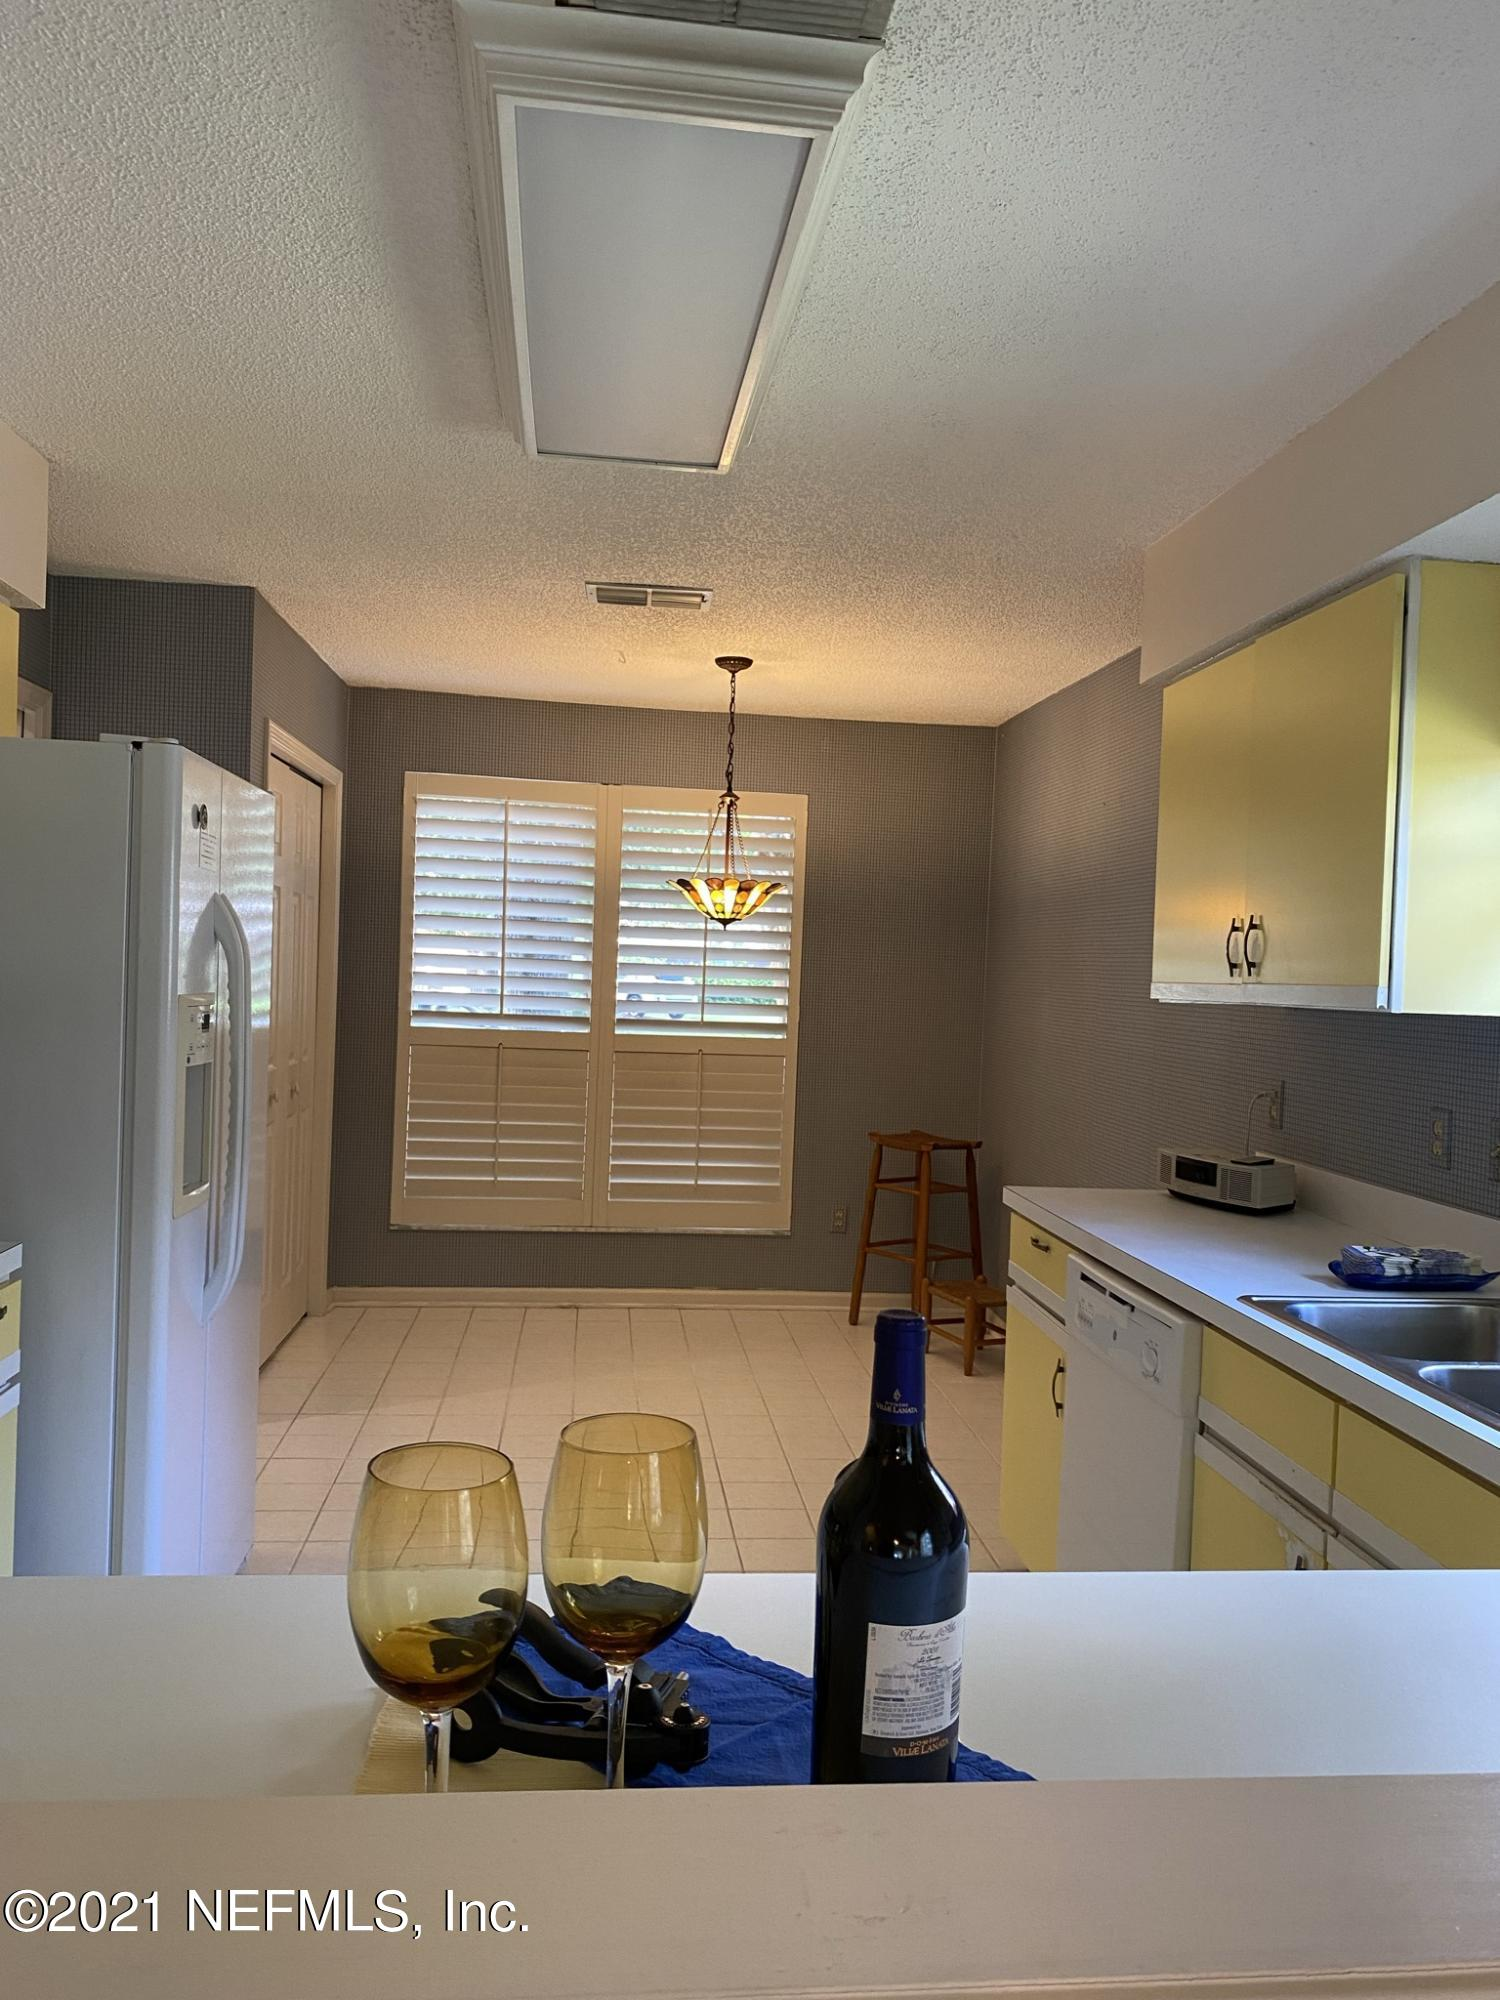 Kitchen from Pass Through in Dining Room